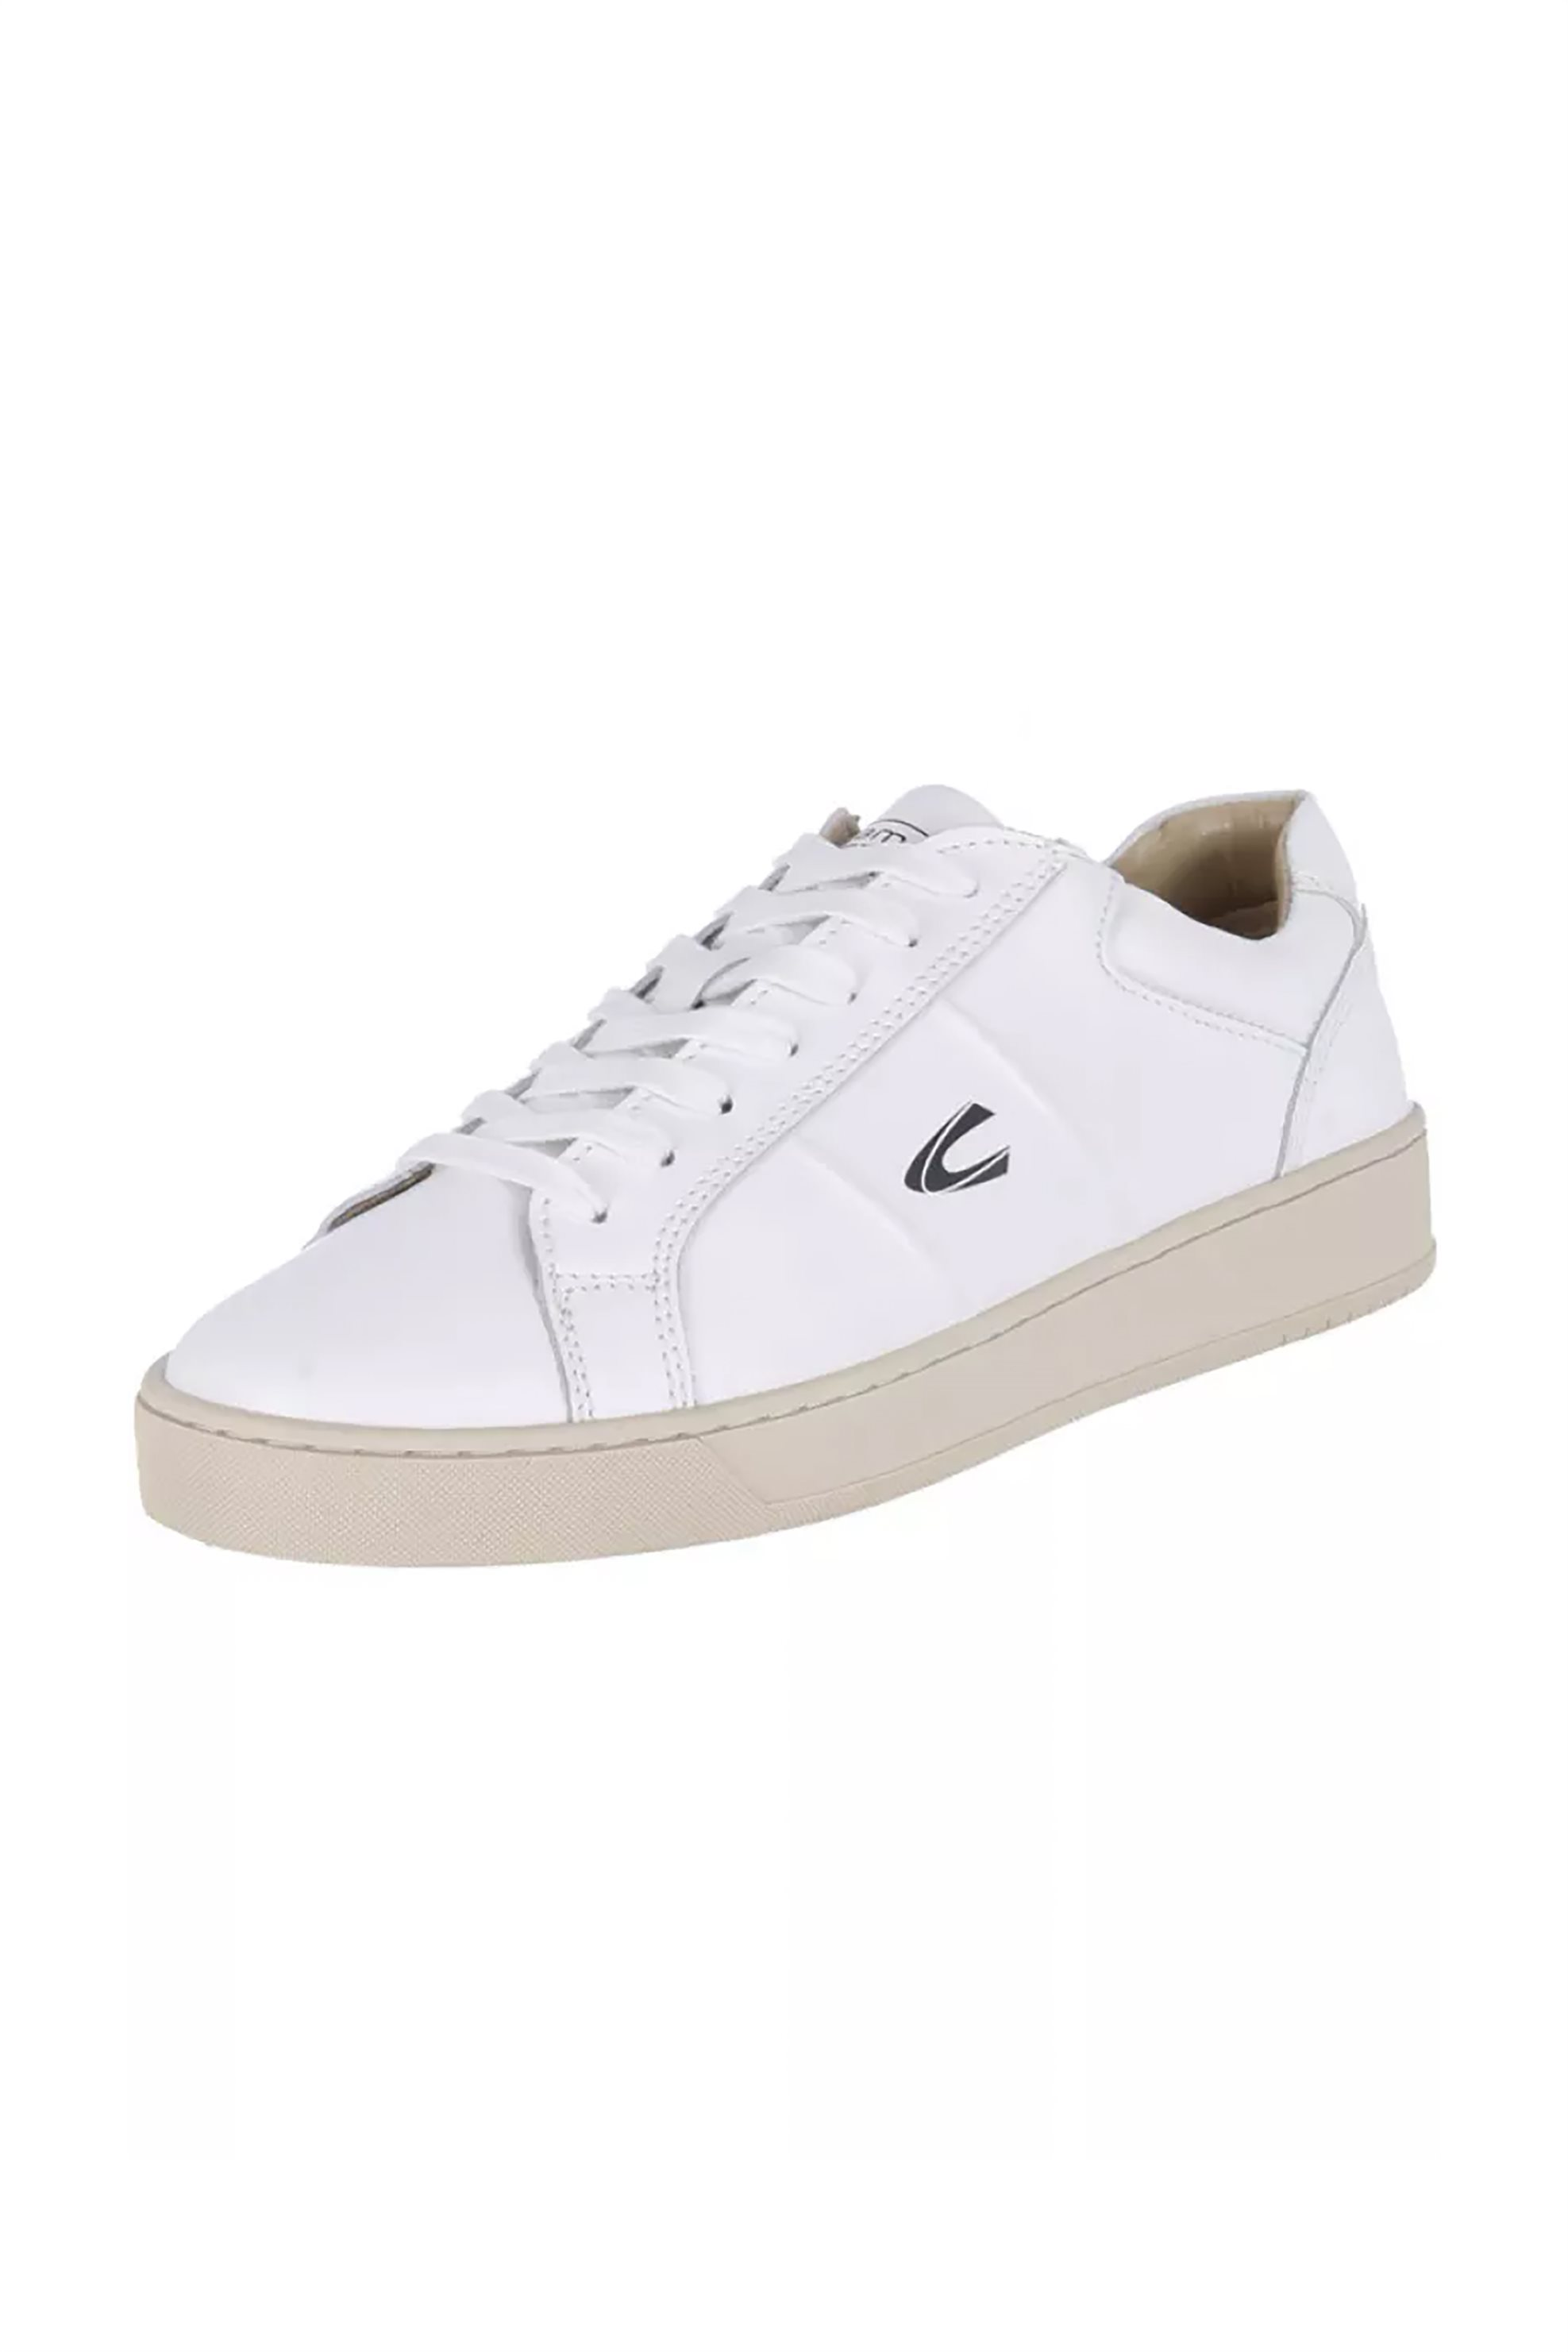 """Camel Active ανδρικά δερμάτινα sneakers με logo """"Cloud Low Lace"""" – CH-91-231249 – Λευκό"""